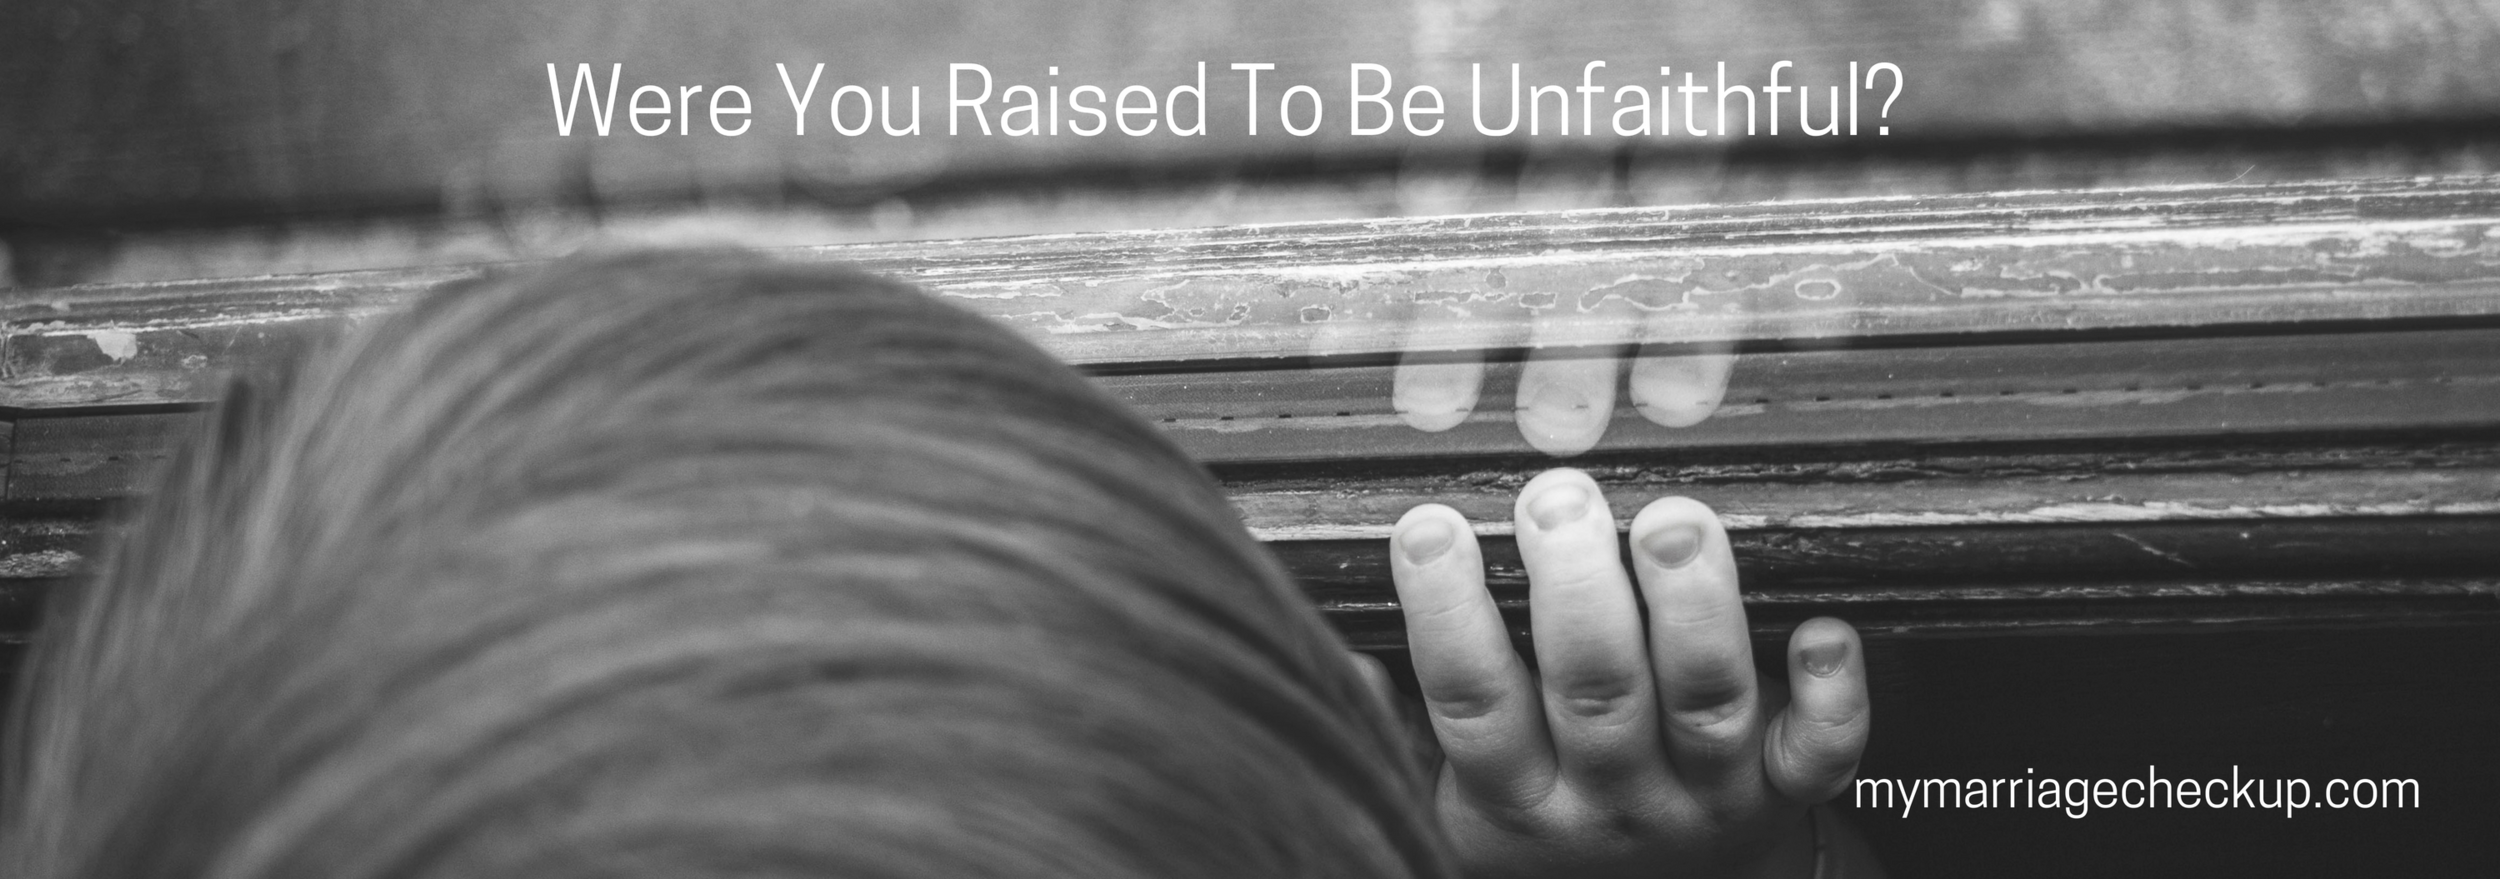 Were You Raised To Be Unfaithful?.png